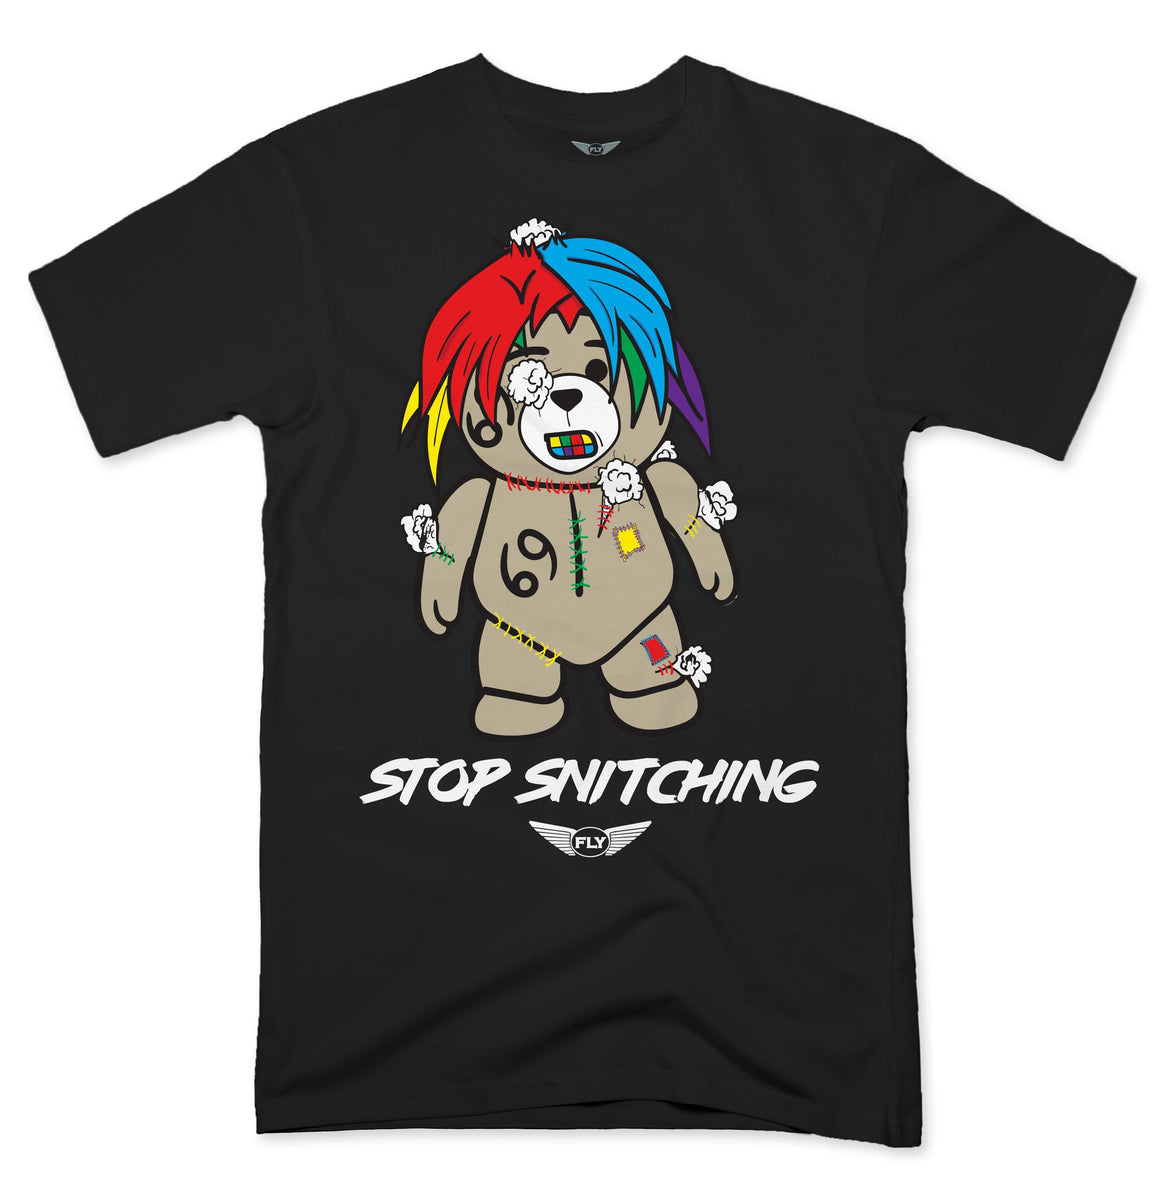 FLY - Stop Snitching Bear Tee-TEE-FLY STREET LIFE-BLACK-S-streetwear-from-FlyStreetLife